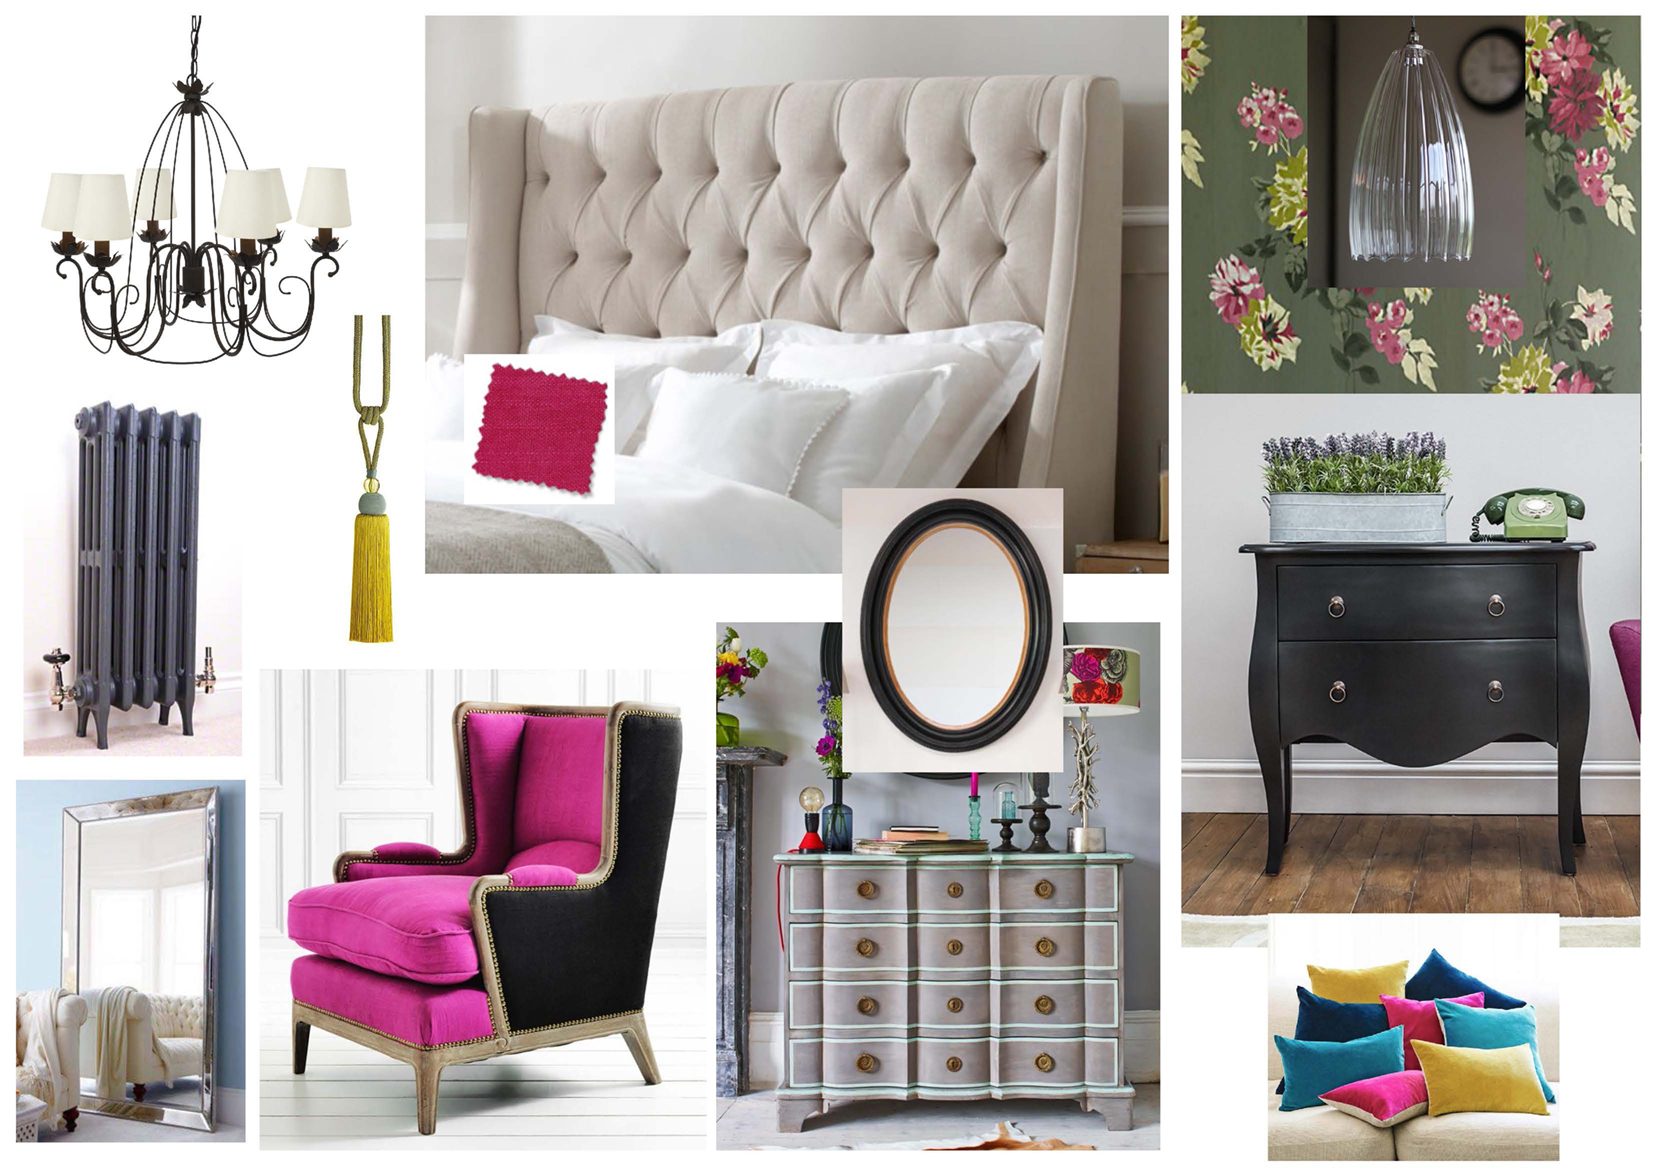 Inspirational interiors mood board